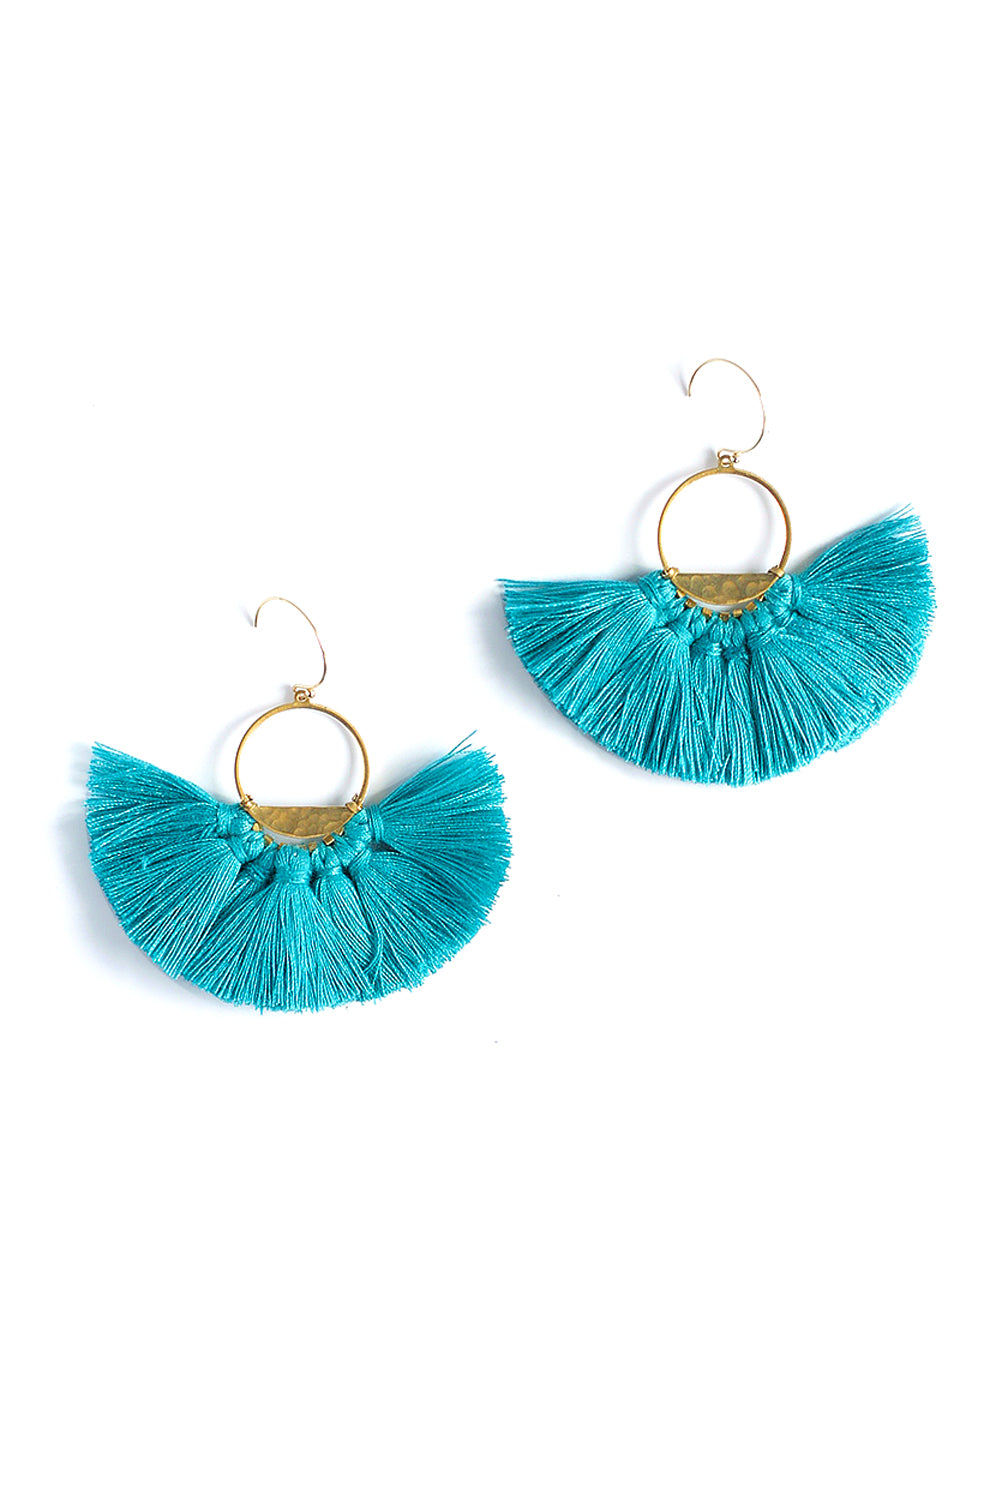 Half Lunar Tassels Statement Earrings - Turquoise